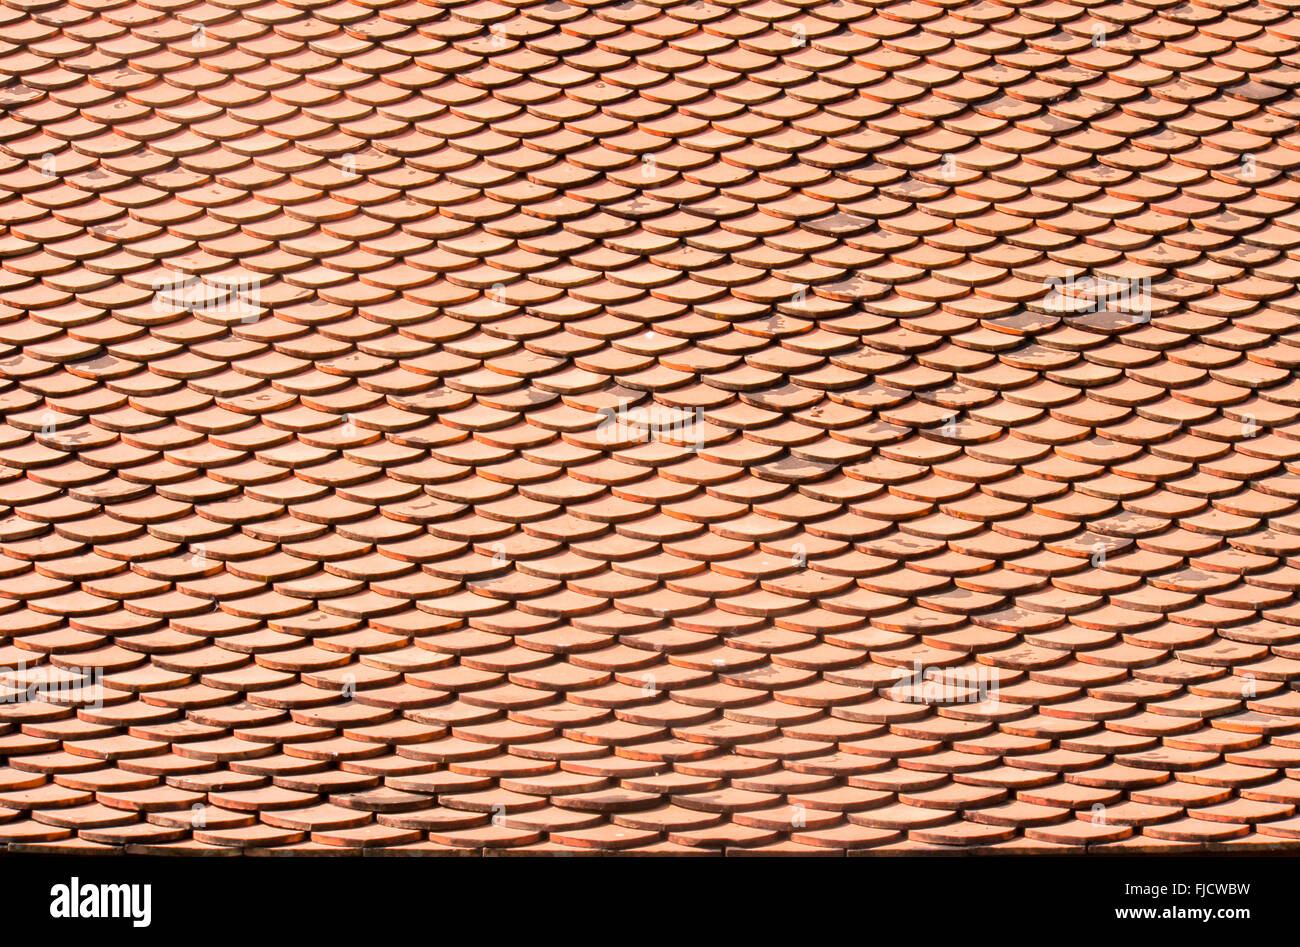 Old roof clay tiles background thai style stock photo for Buy clay roof tiles online